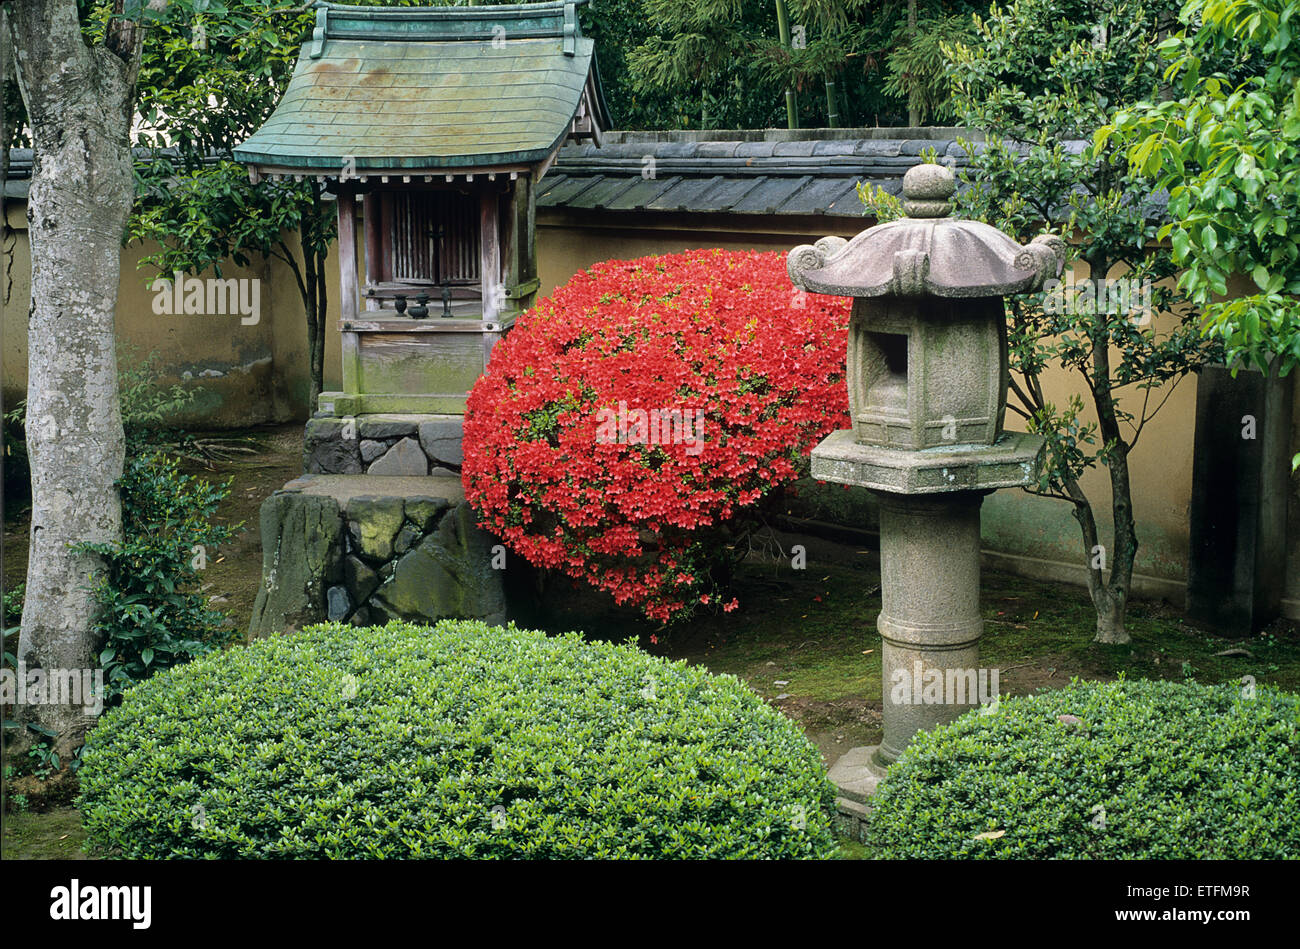 A single red azalea creates a contrasting blaze of color against the stone shrine and lantern of a Zen garden... - Stock Image